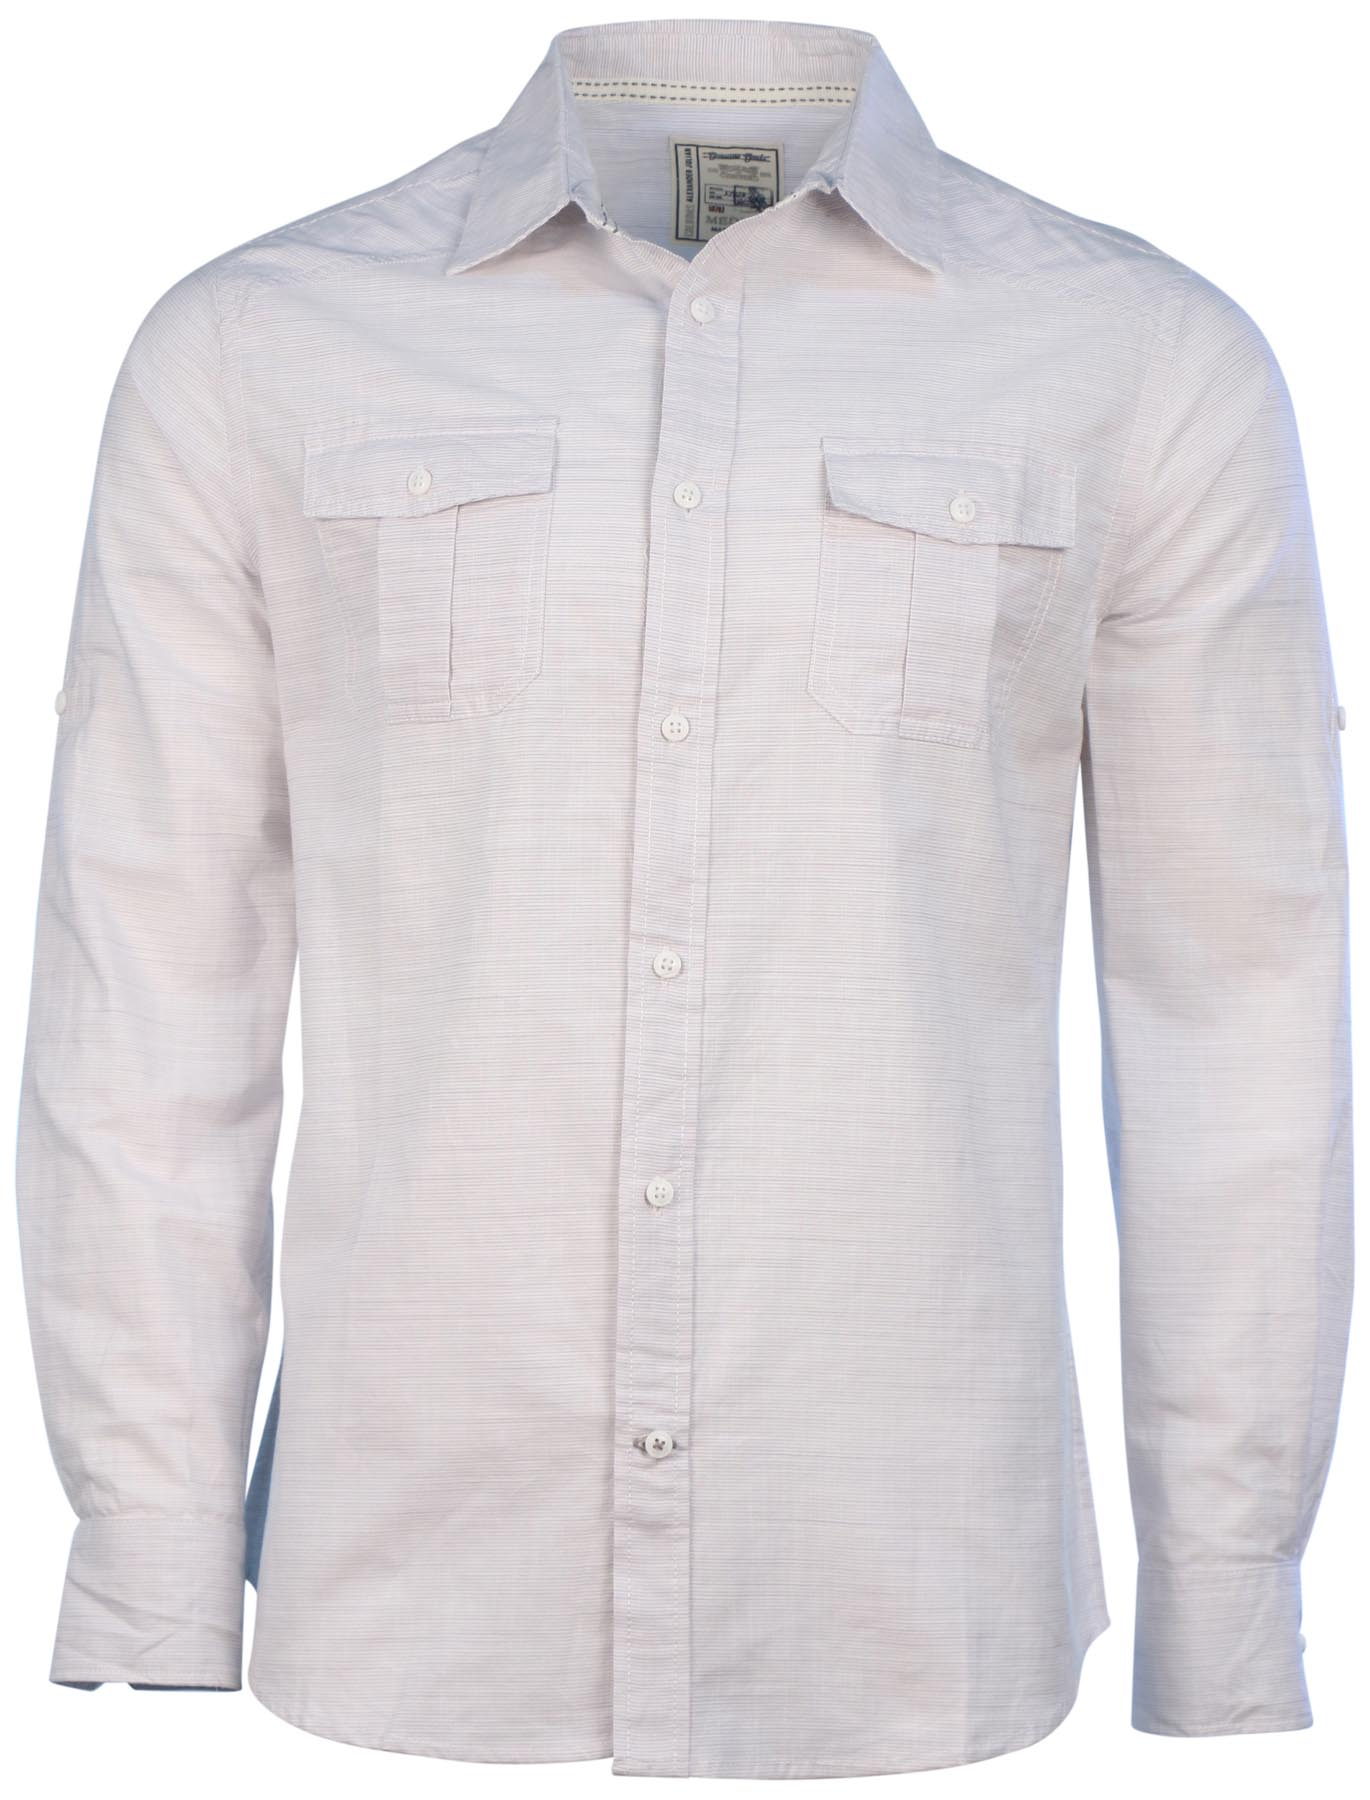 Classic Men's Shirts Brands